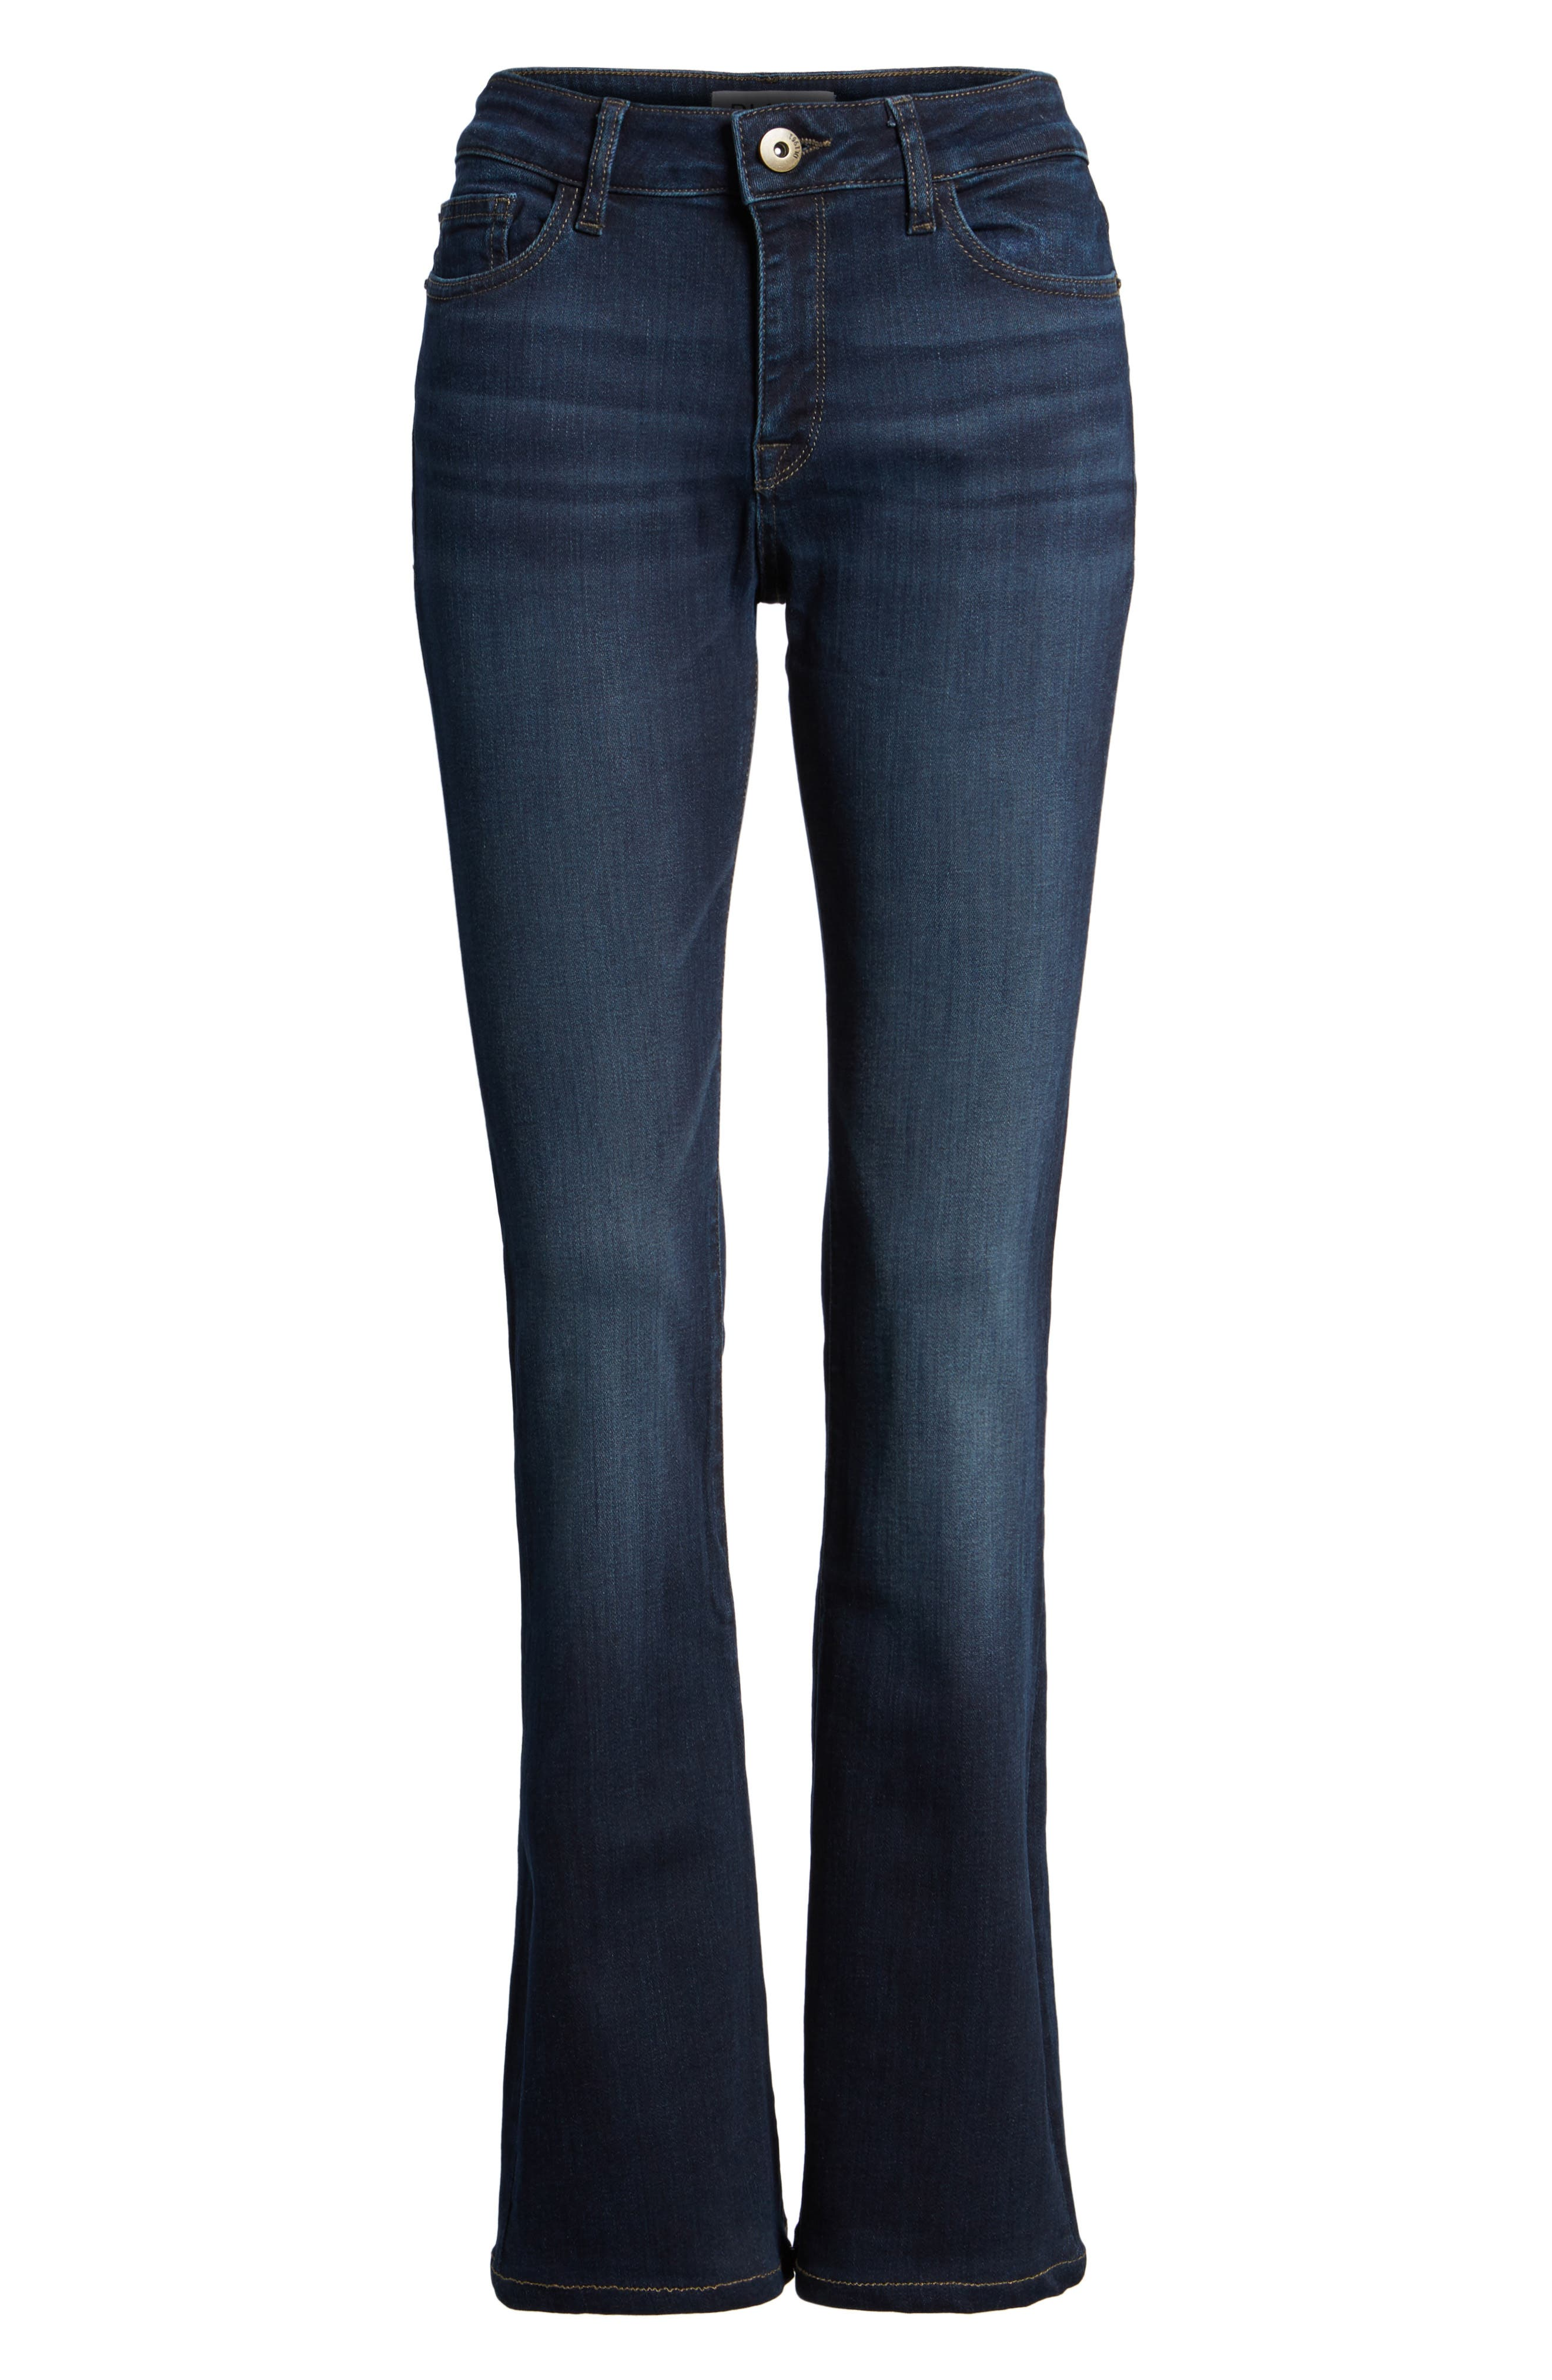 'Bridget 33' Bootcut Jeans,                             Main thumbnail 1, color,                             PEAK